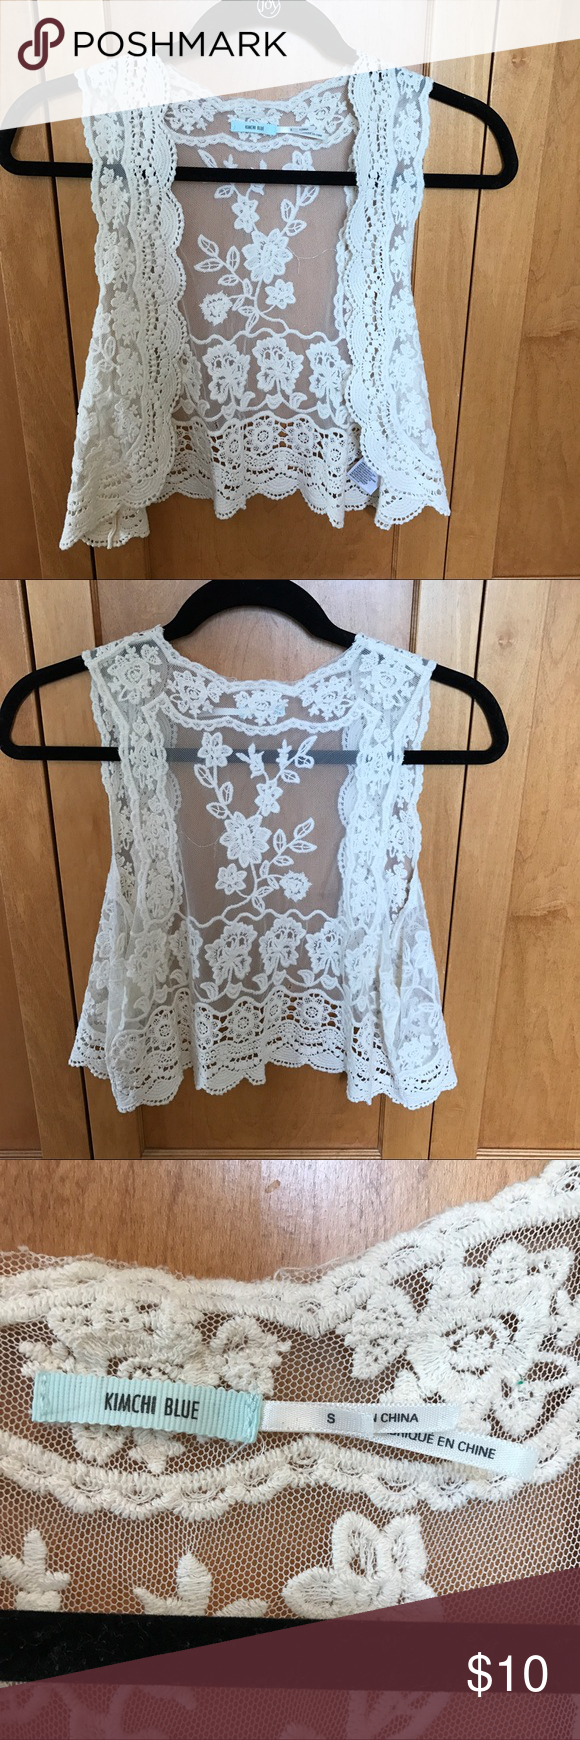 NEW urban outfitters tank/ cardigan Never worn tank/ cardigan from urban outfitters. Beautiful lacing, this is more of a crop tank top but would be beautiful as a layering piece. Urban Outfitters Tops Tank Tops